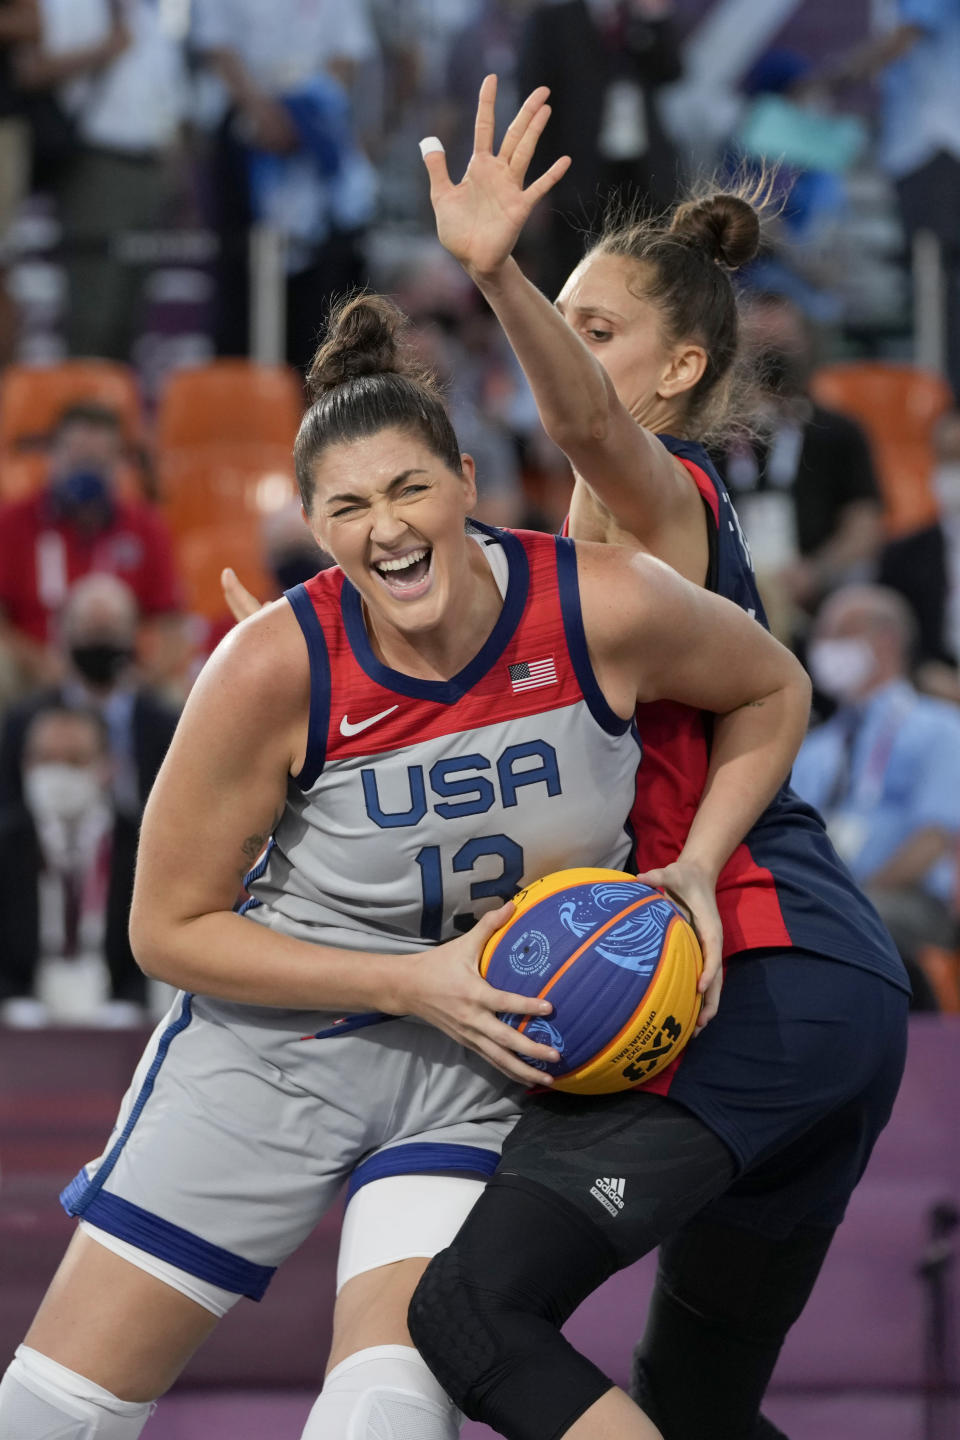 United States' Stefanie Dolson (13) heads to the basket past as France's Ana Maria Filip defends during a women's 3-on-3 basketball game at the 2020 Summer Olympics, Saturday, July 24, 2021, in Tokyo, Japan. (AP Photo/Jeff Roberson)